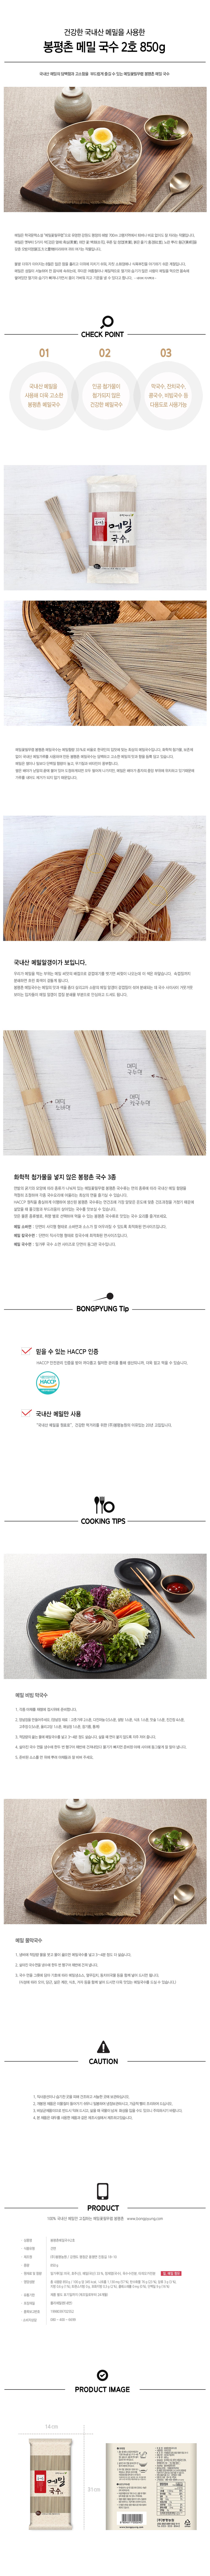 Bongpyeong buckwheat noodles description and information regarding noodles weight, noodles manufacturing process, and how to use noodles in recipes